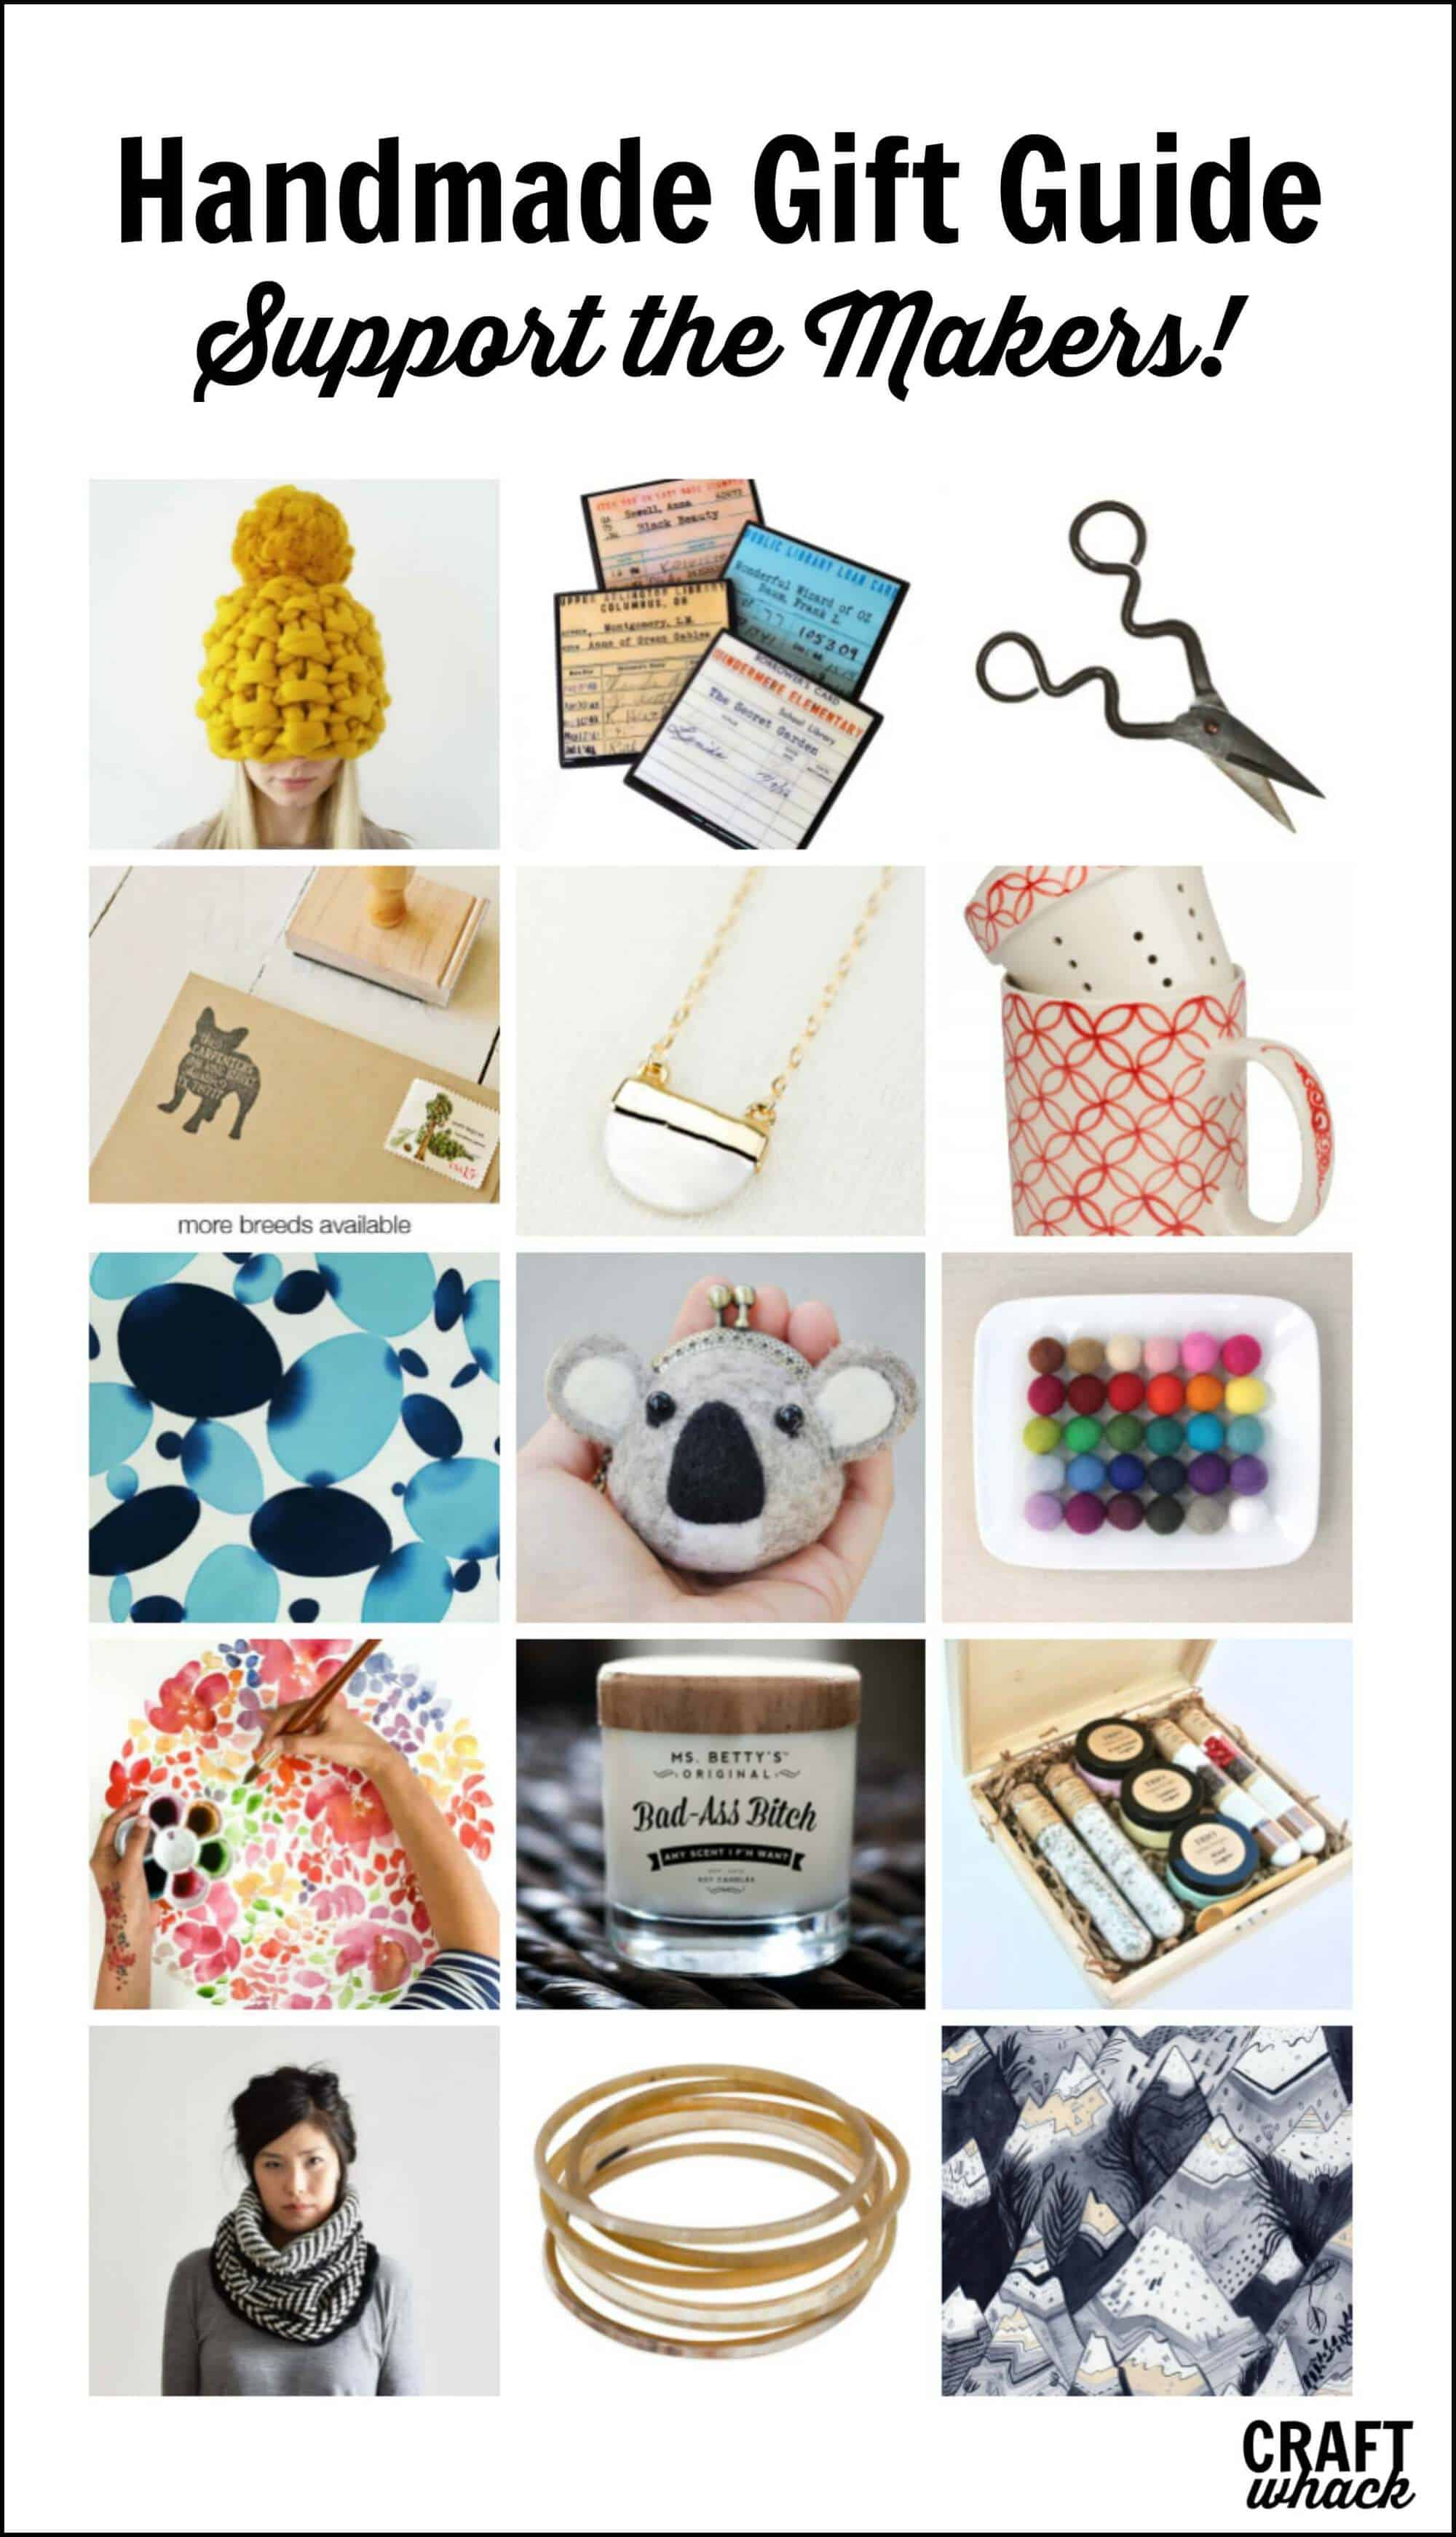 Artisan made gifts! 2017 gift guide from Craftwhack